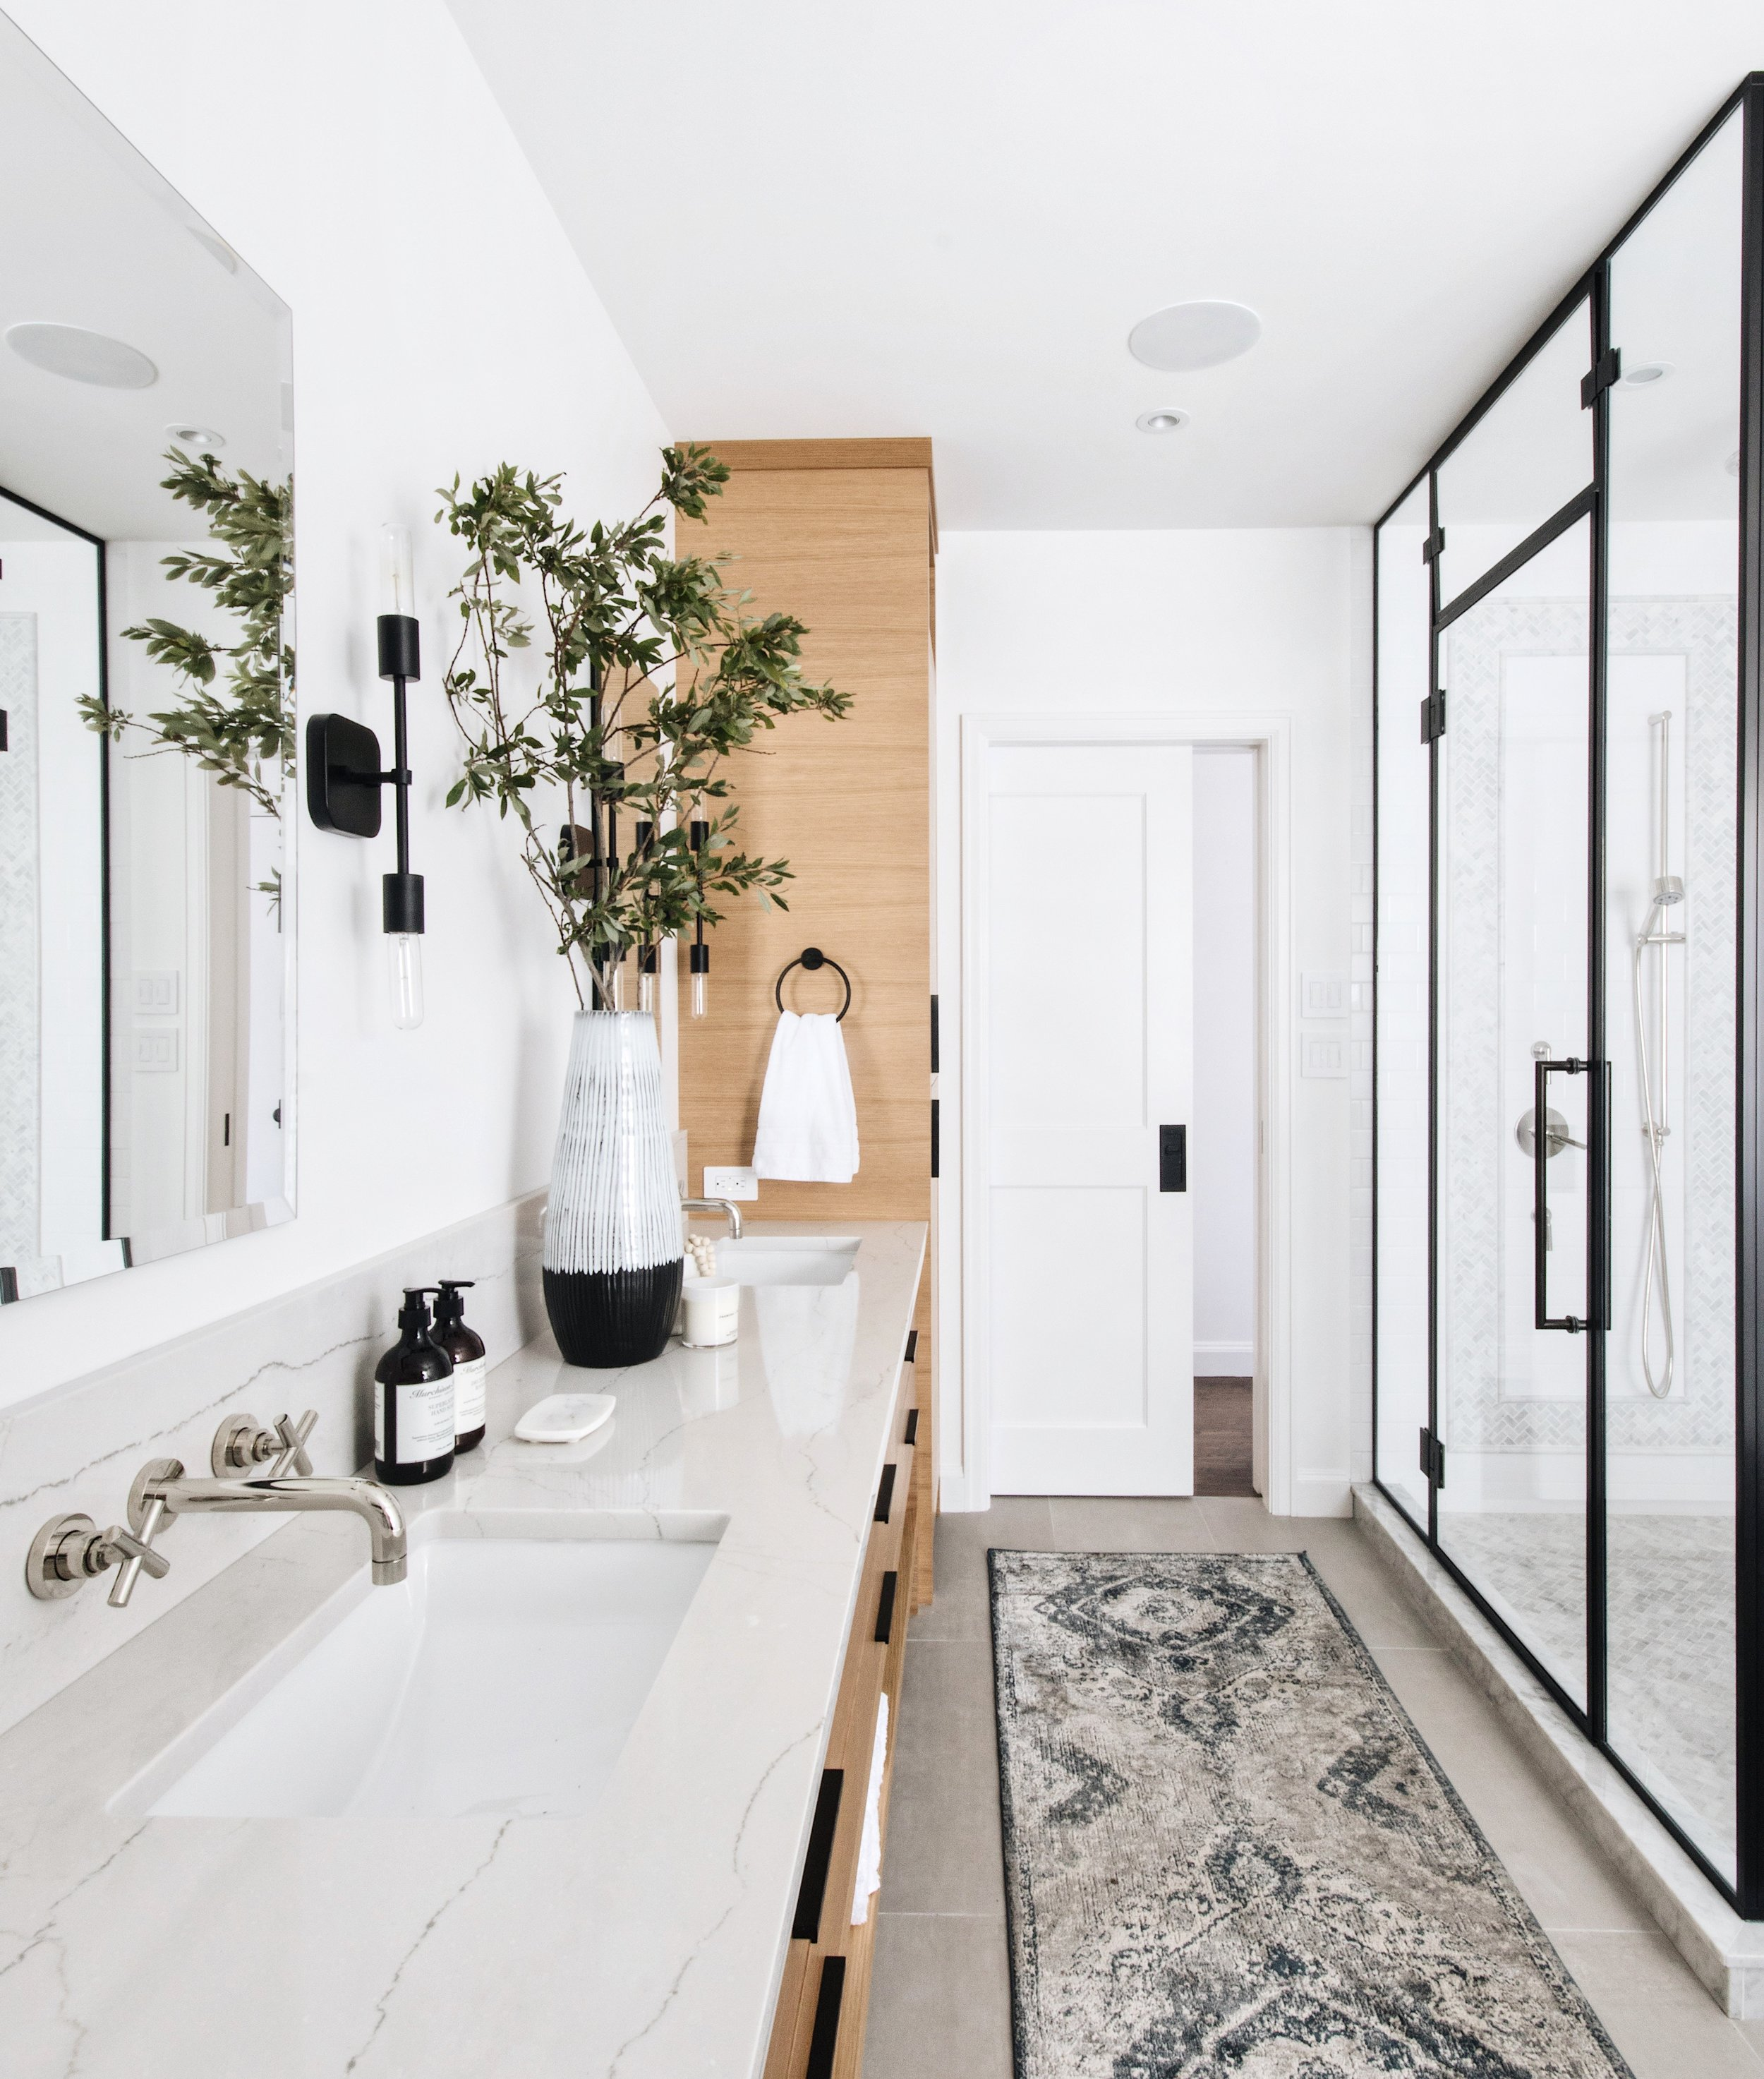 How-to style a powder room or master ensuite. Natural Wood Tones in Master Ensuite Bedroom by Ottawa Interior Design Firm Leclair Decor